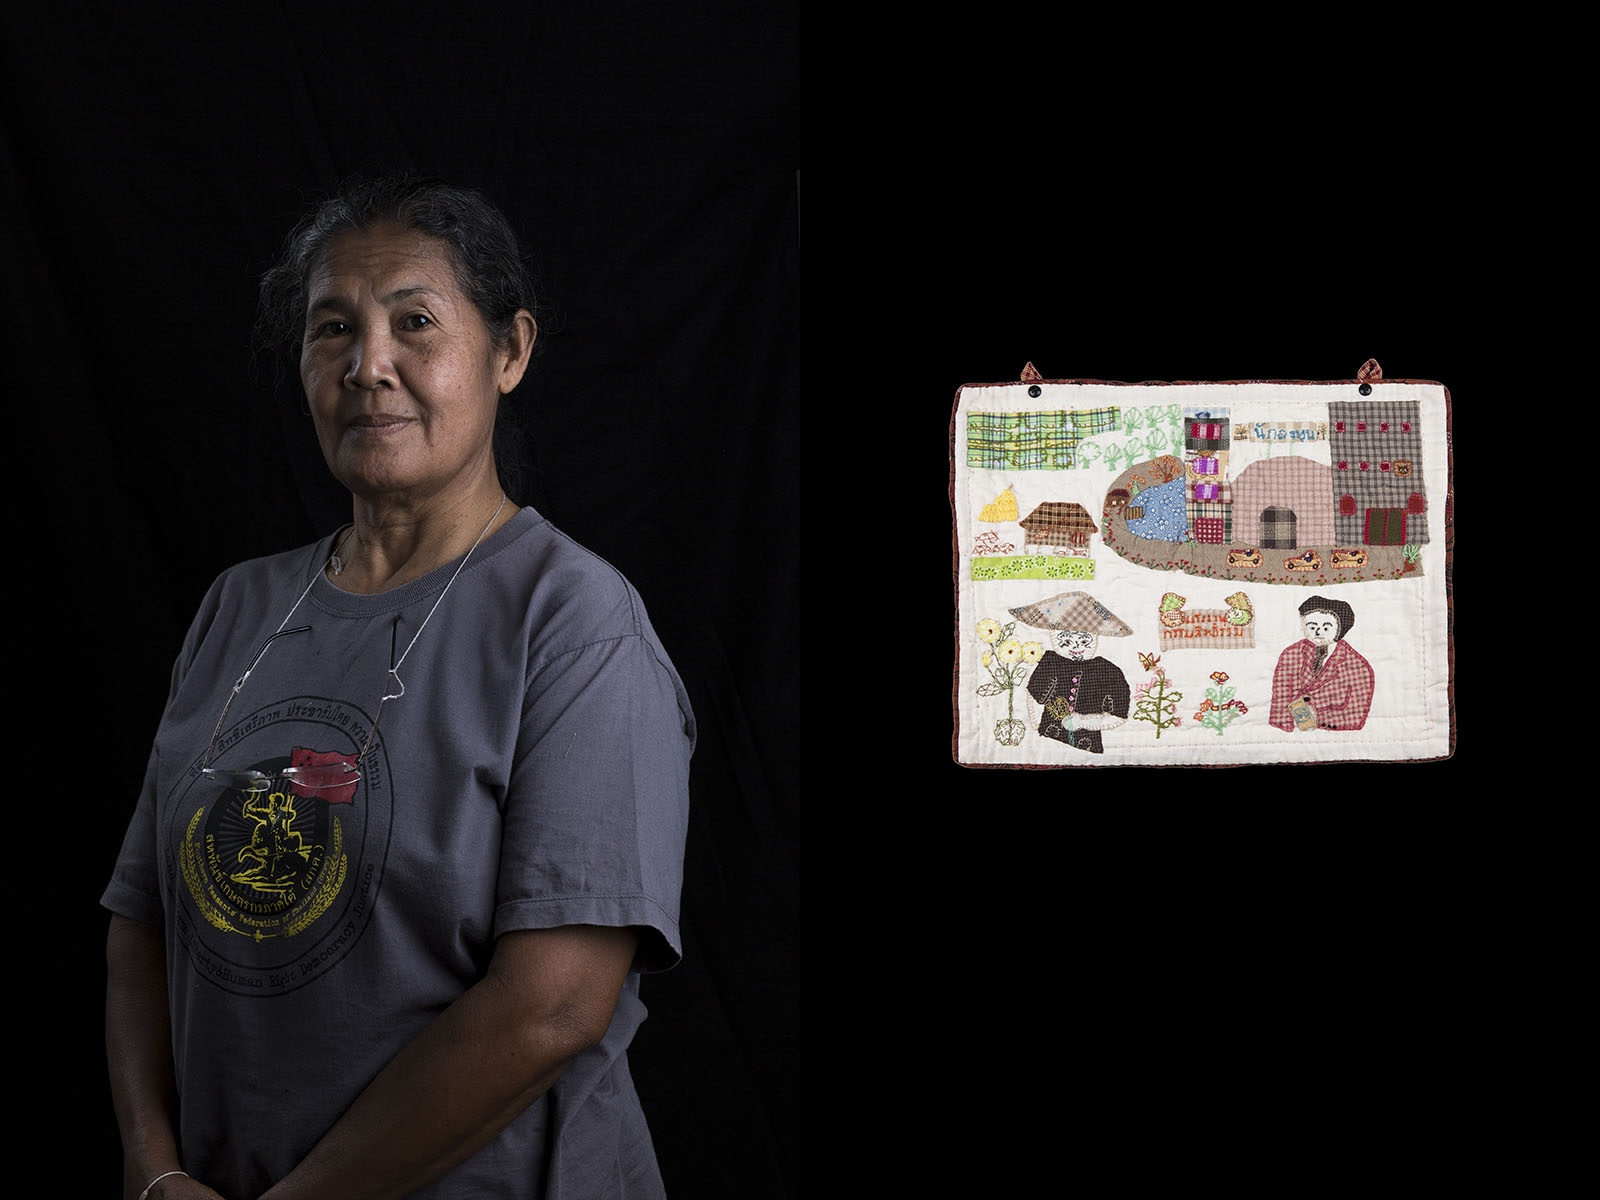 Manee Chaisuwan  is a member of the Southern Peasant Federation of Thailand (SPFT).                          Formed in 2008 but with its roots in a land reform movement that started in the early nineties in the province of Surat Thani, SPFT works on behalf of landless farmers to secure them land with which to farm. It's very being rose from the inability of farmers to count on the Government to act independently or the companies in question to regulate themselves by following the laws.